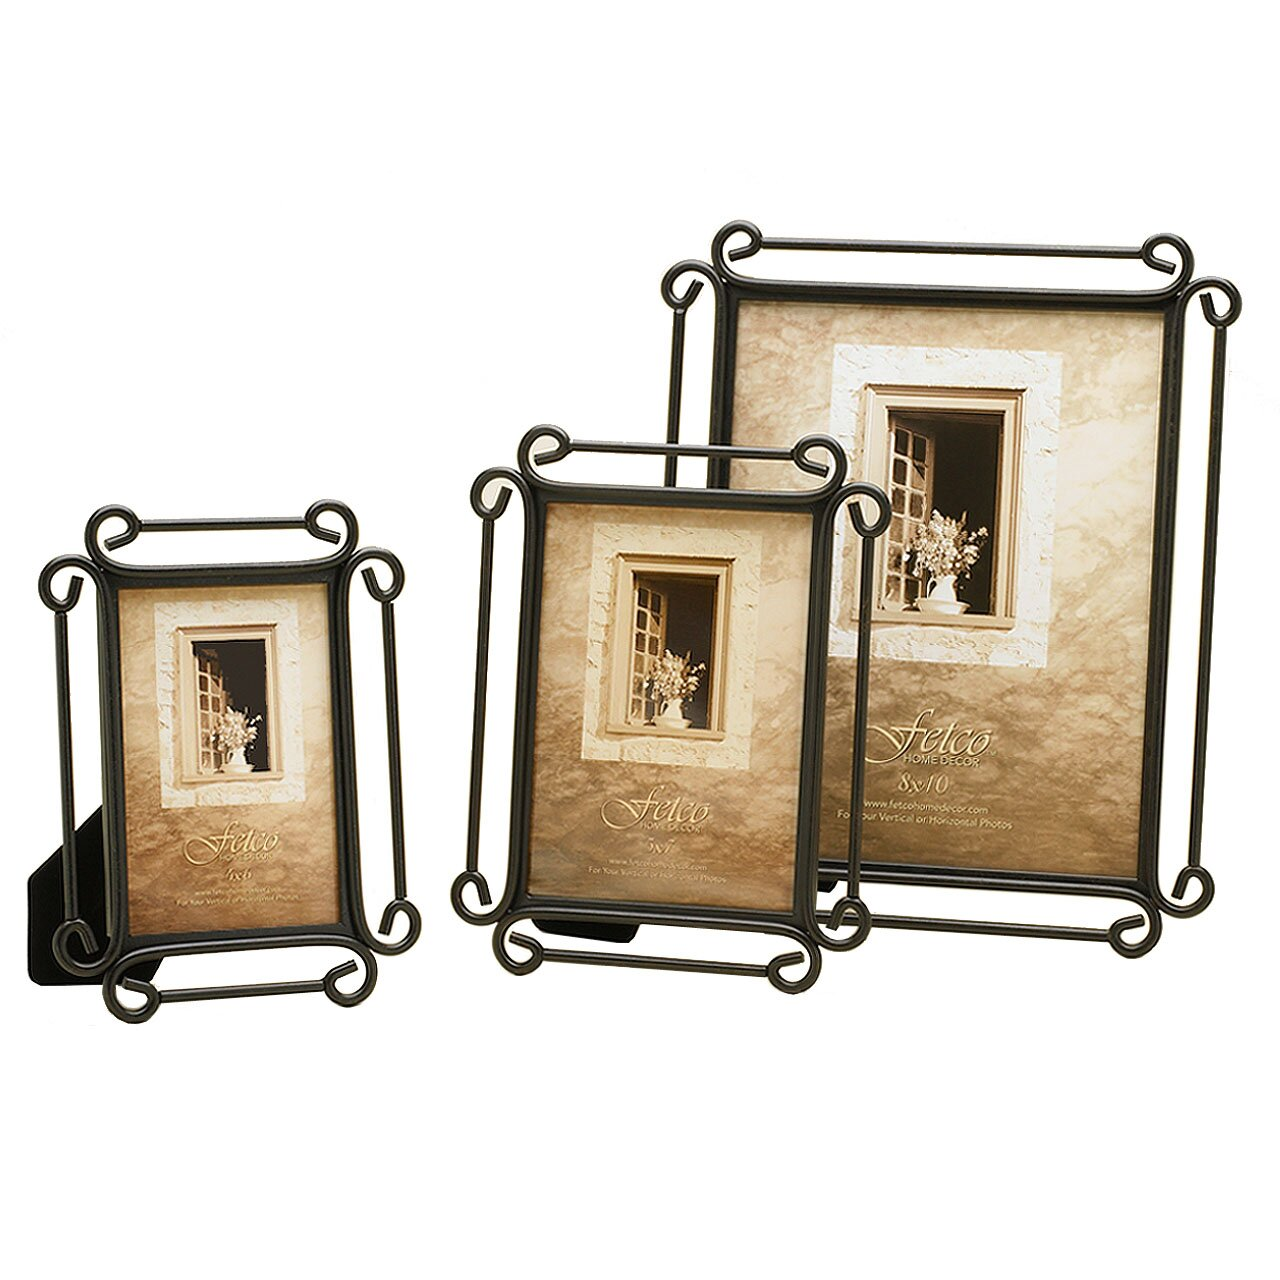 Fetco Home Decor Tuscan Alton Corner Scroll Picture Frame